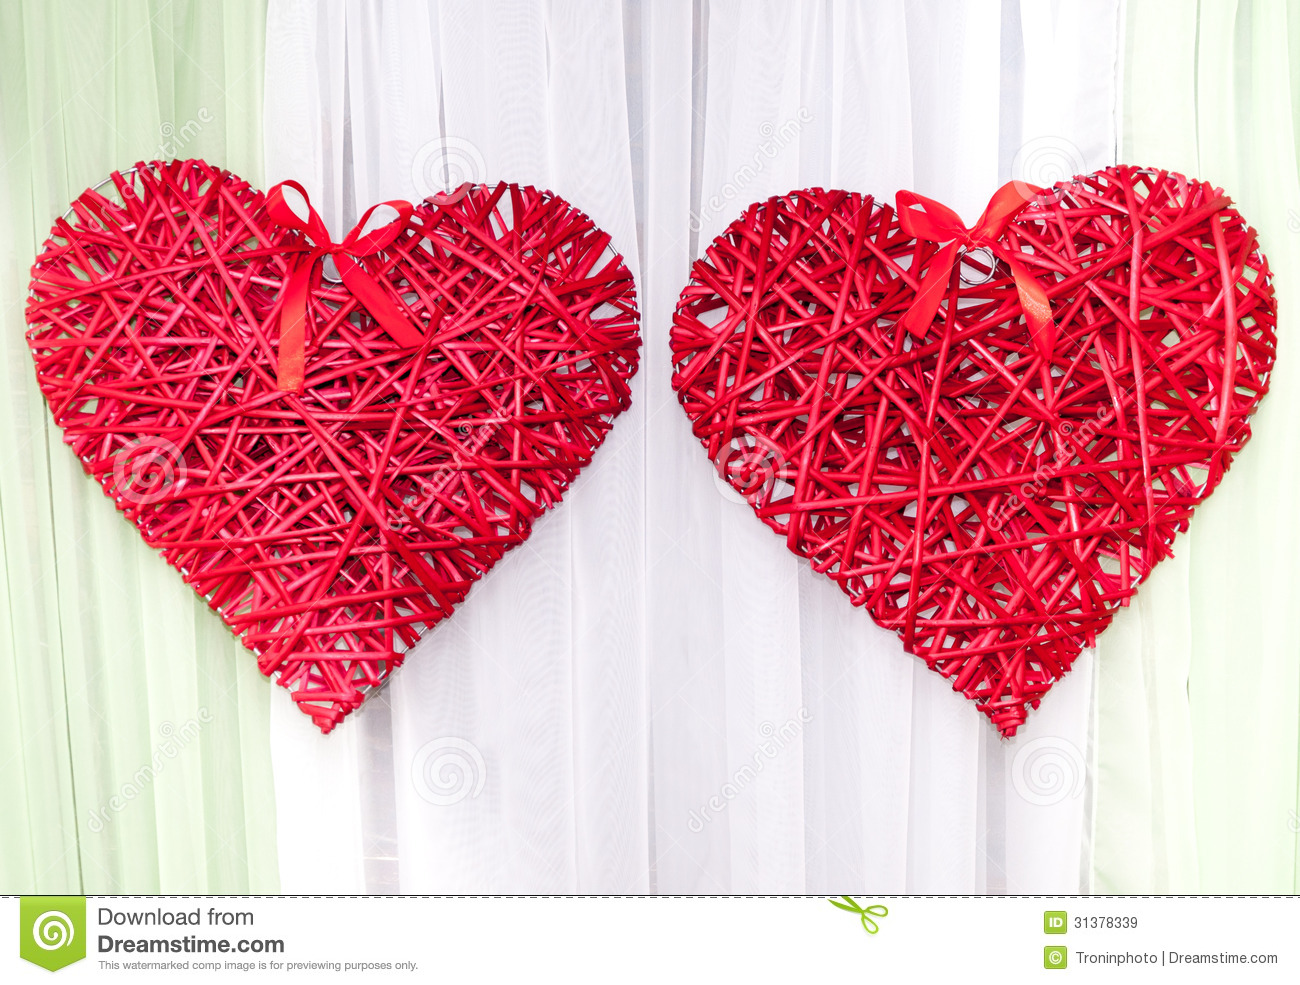 Braided red heart as a wedding decoration royalty free